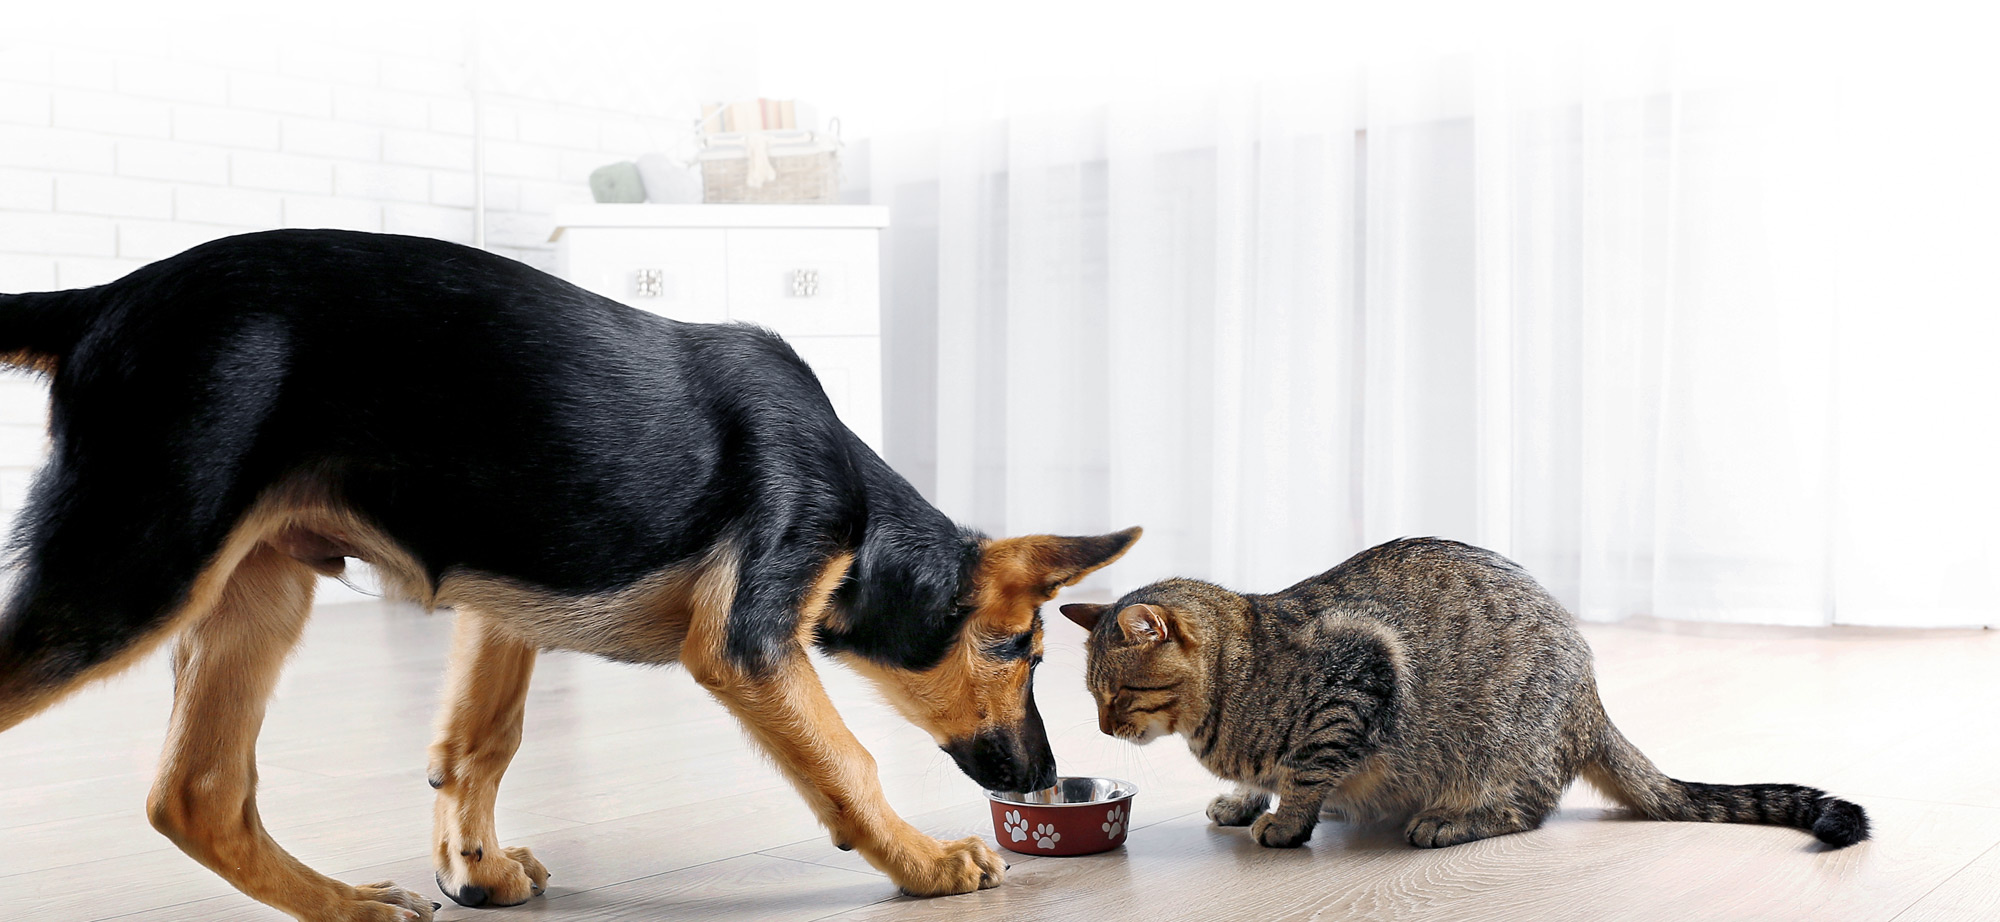 Dog and Cat Sharing Food